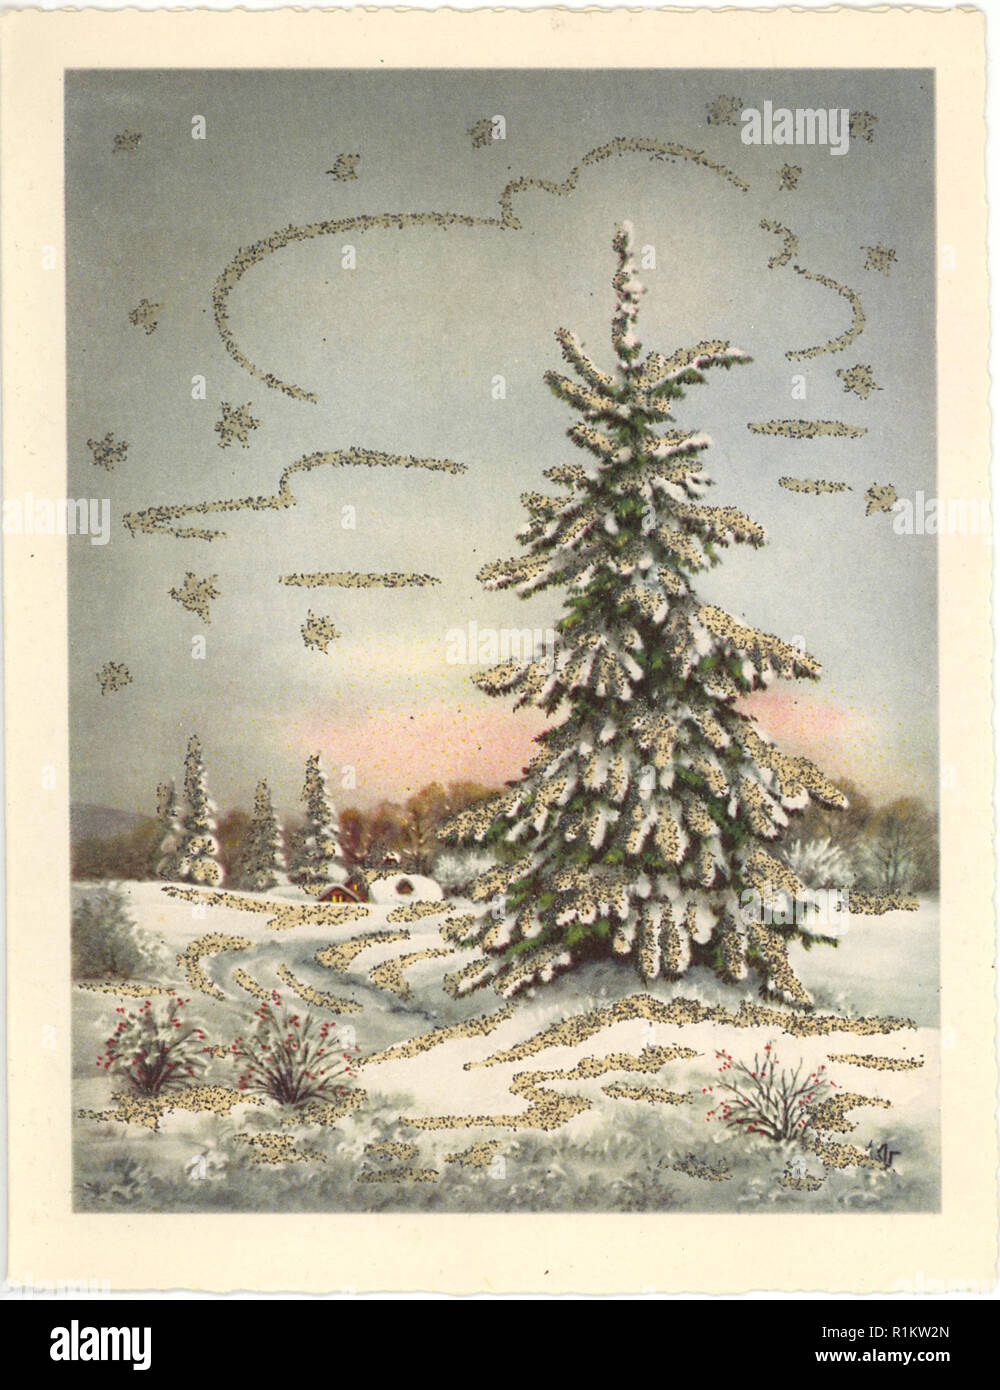 Image Carte Noel Vintage.Carte De Noel Vintage Design Illustre Banque D Images Photo